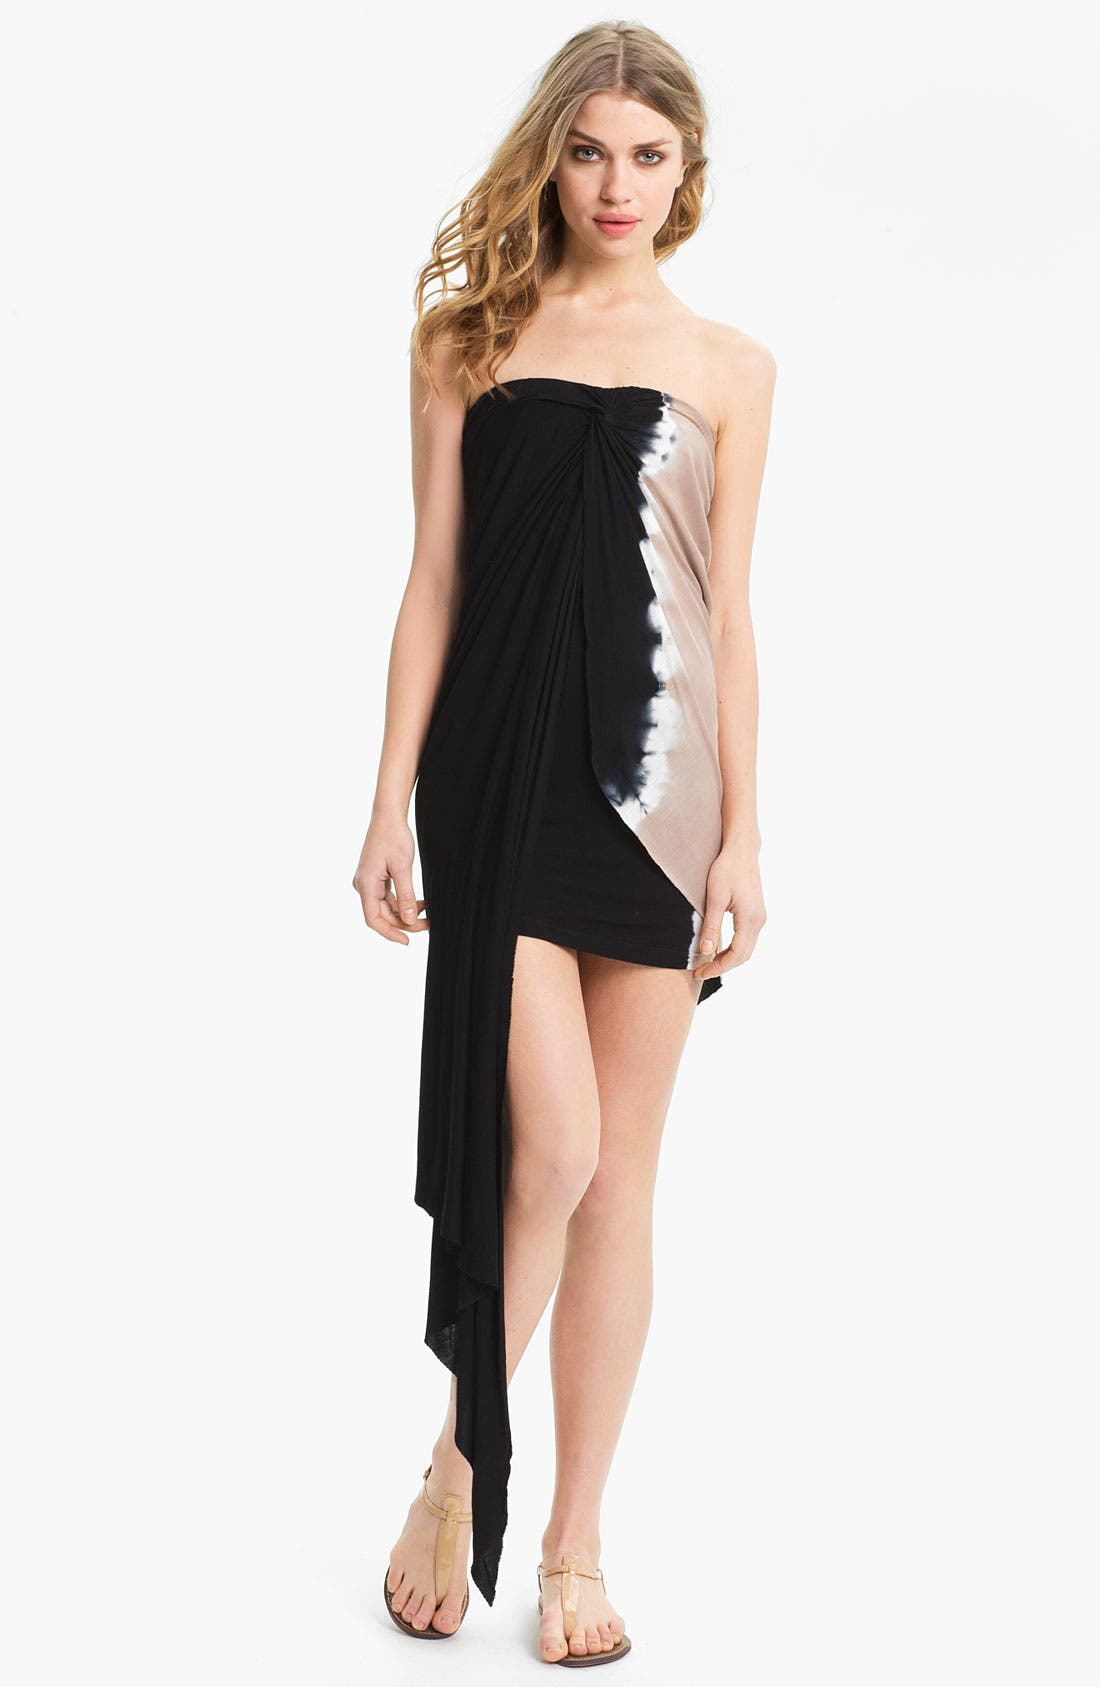 Alternate Image 1 Selected - Young, Fabulous & Broke 'Kai' Strapless Cascade Dress